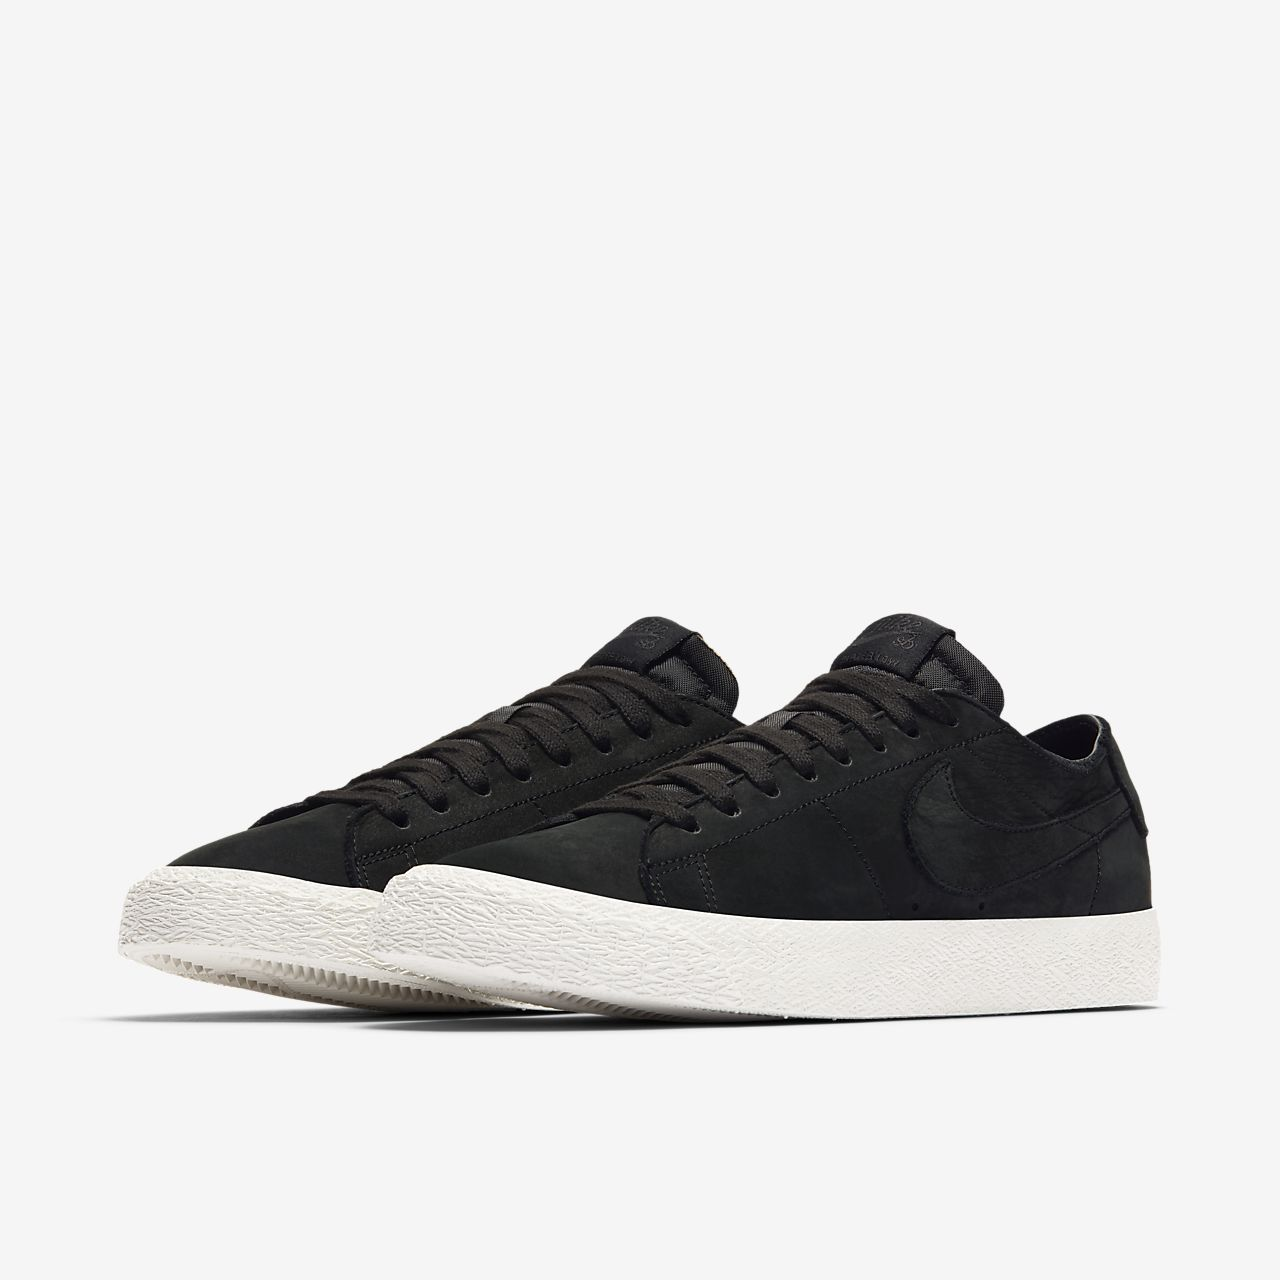 Nike SB Zoom Blazer Low Deconstructed Mens Skateboarding Shoe